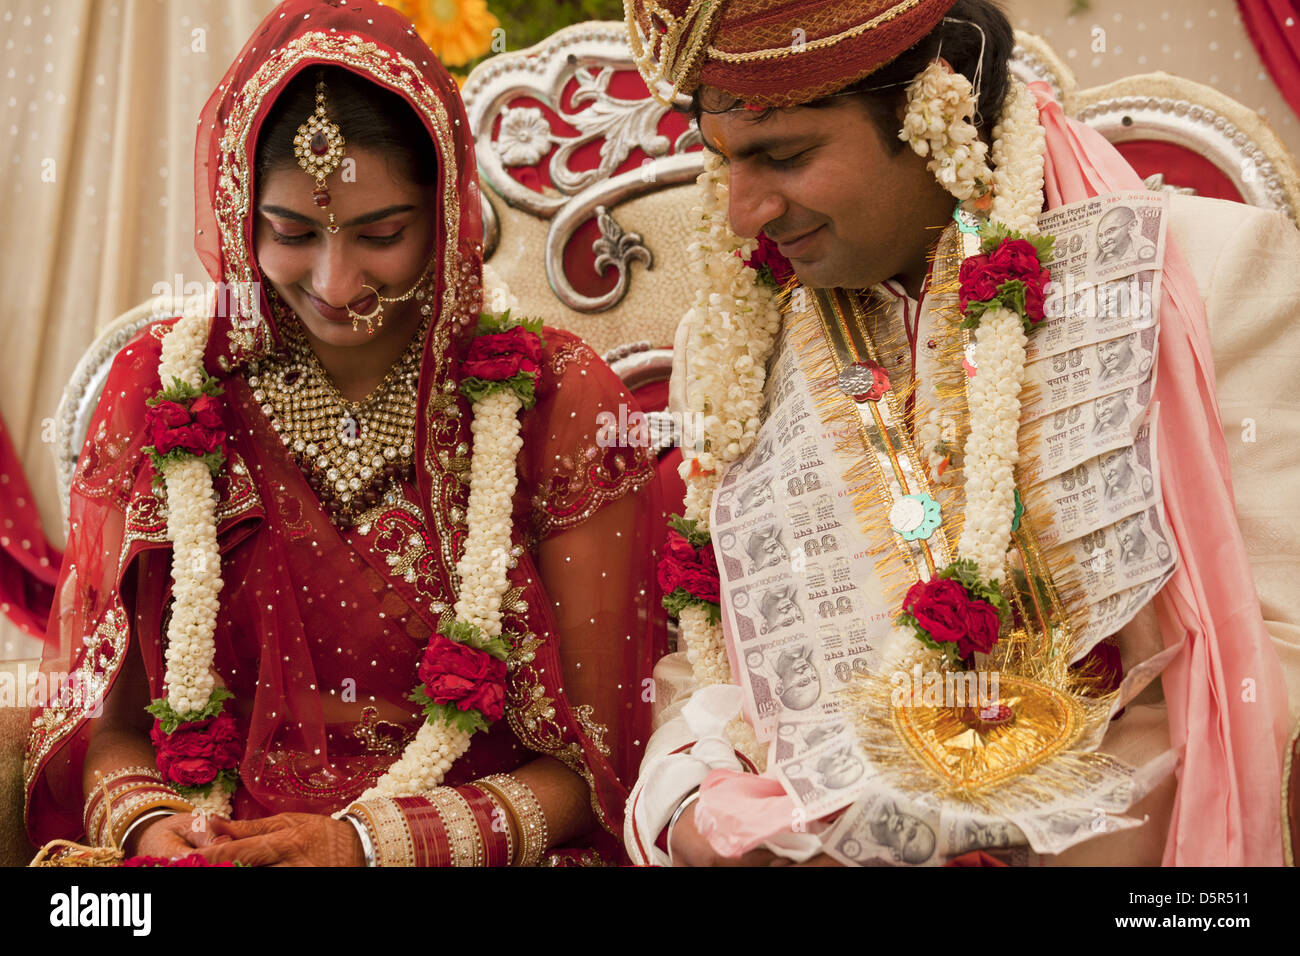 Newly Wed Indian Couple At Their Wedding Ceremony